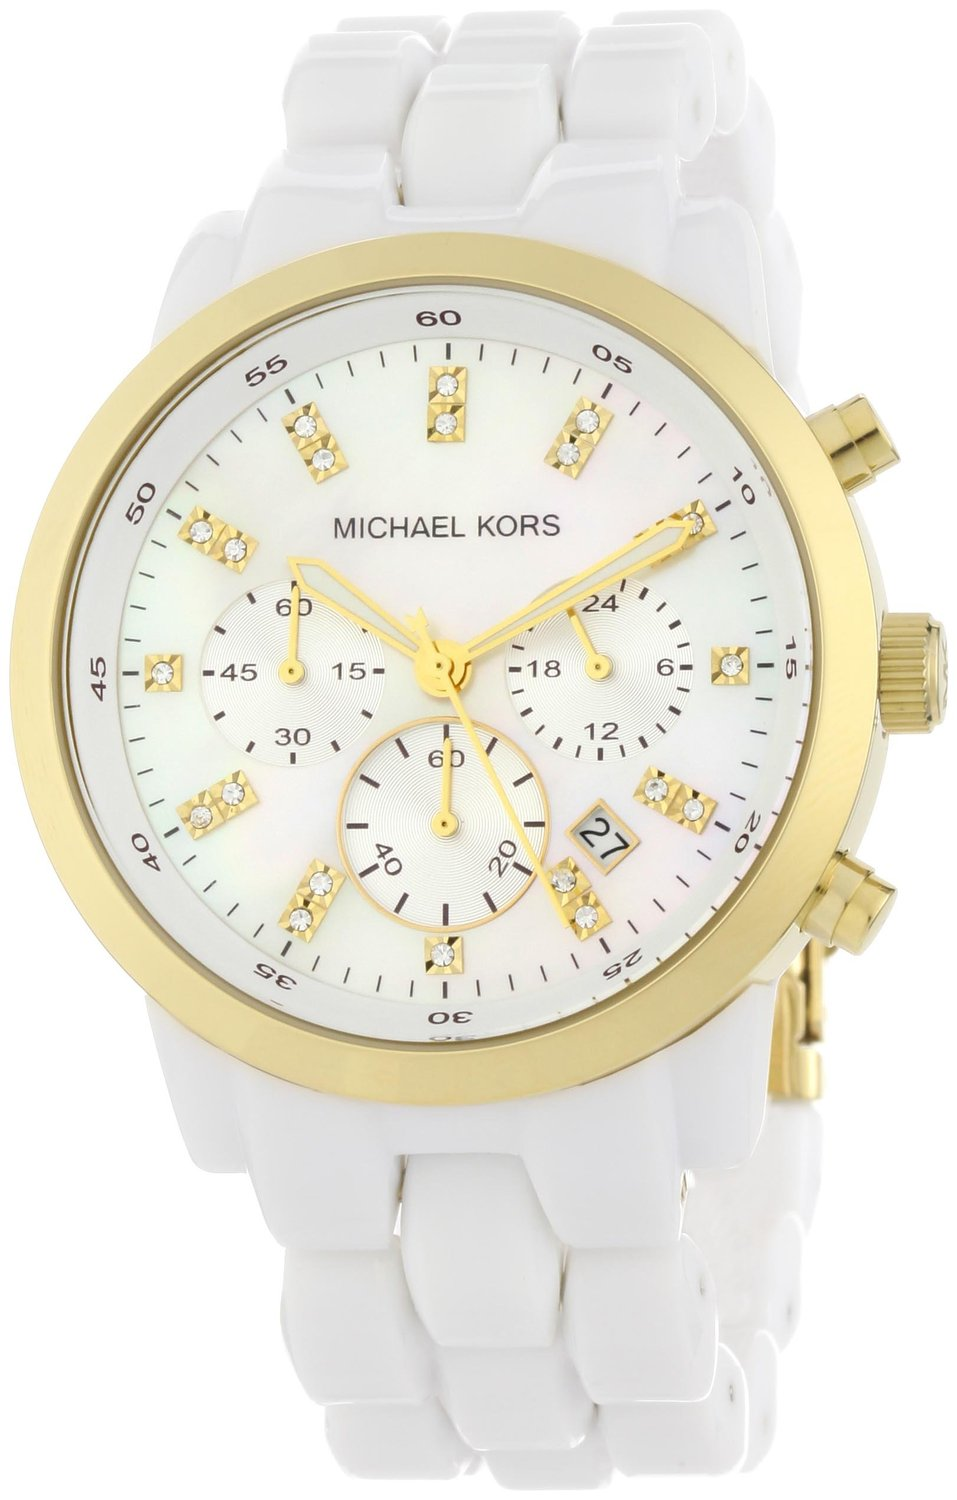 Michael kors ladies chronograph watch mk5218 with white acrylic bracelet strap, gold plated case and white dial: michael kors: amazon.co.uk: watches